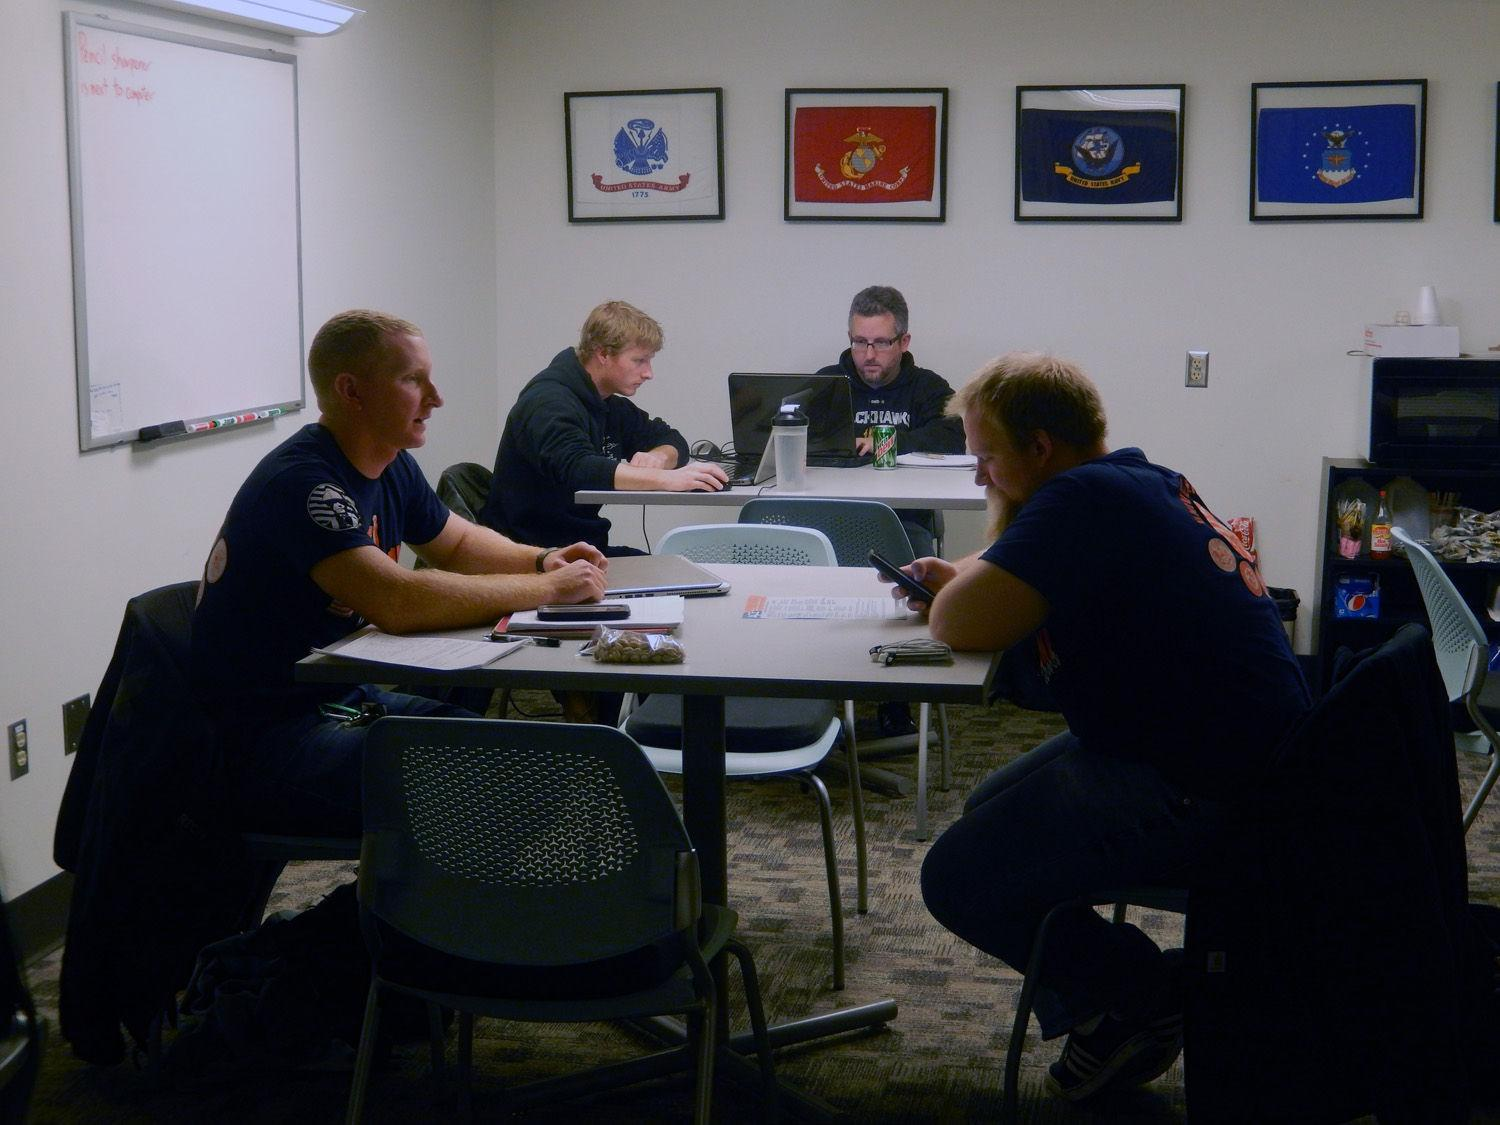 """Veteran students study in the Veteran Student Lounge in the basement of Illini Union on Monday. Study groups allow student veterans to be with """"like-minded people."""""""